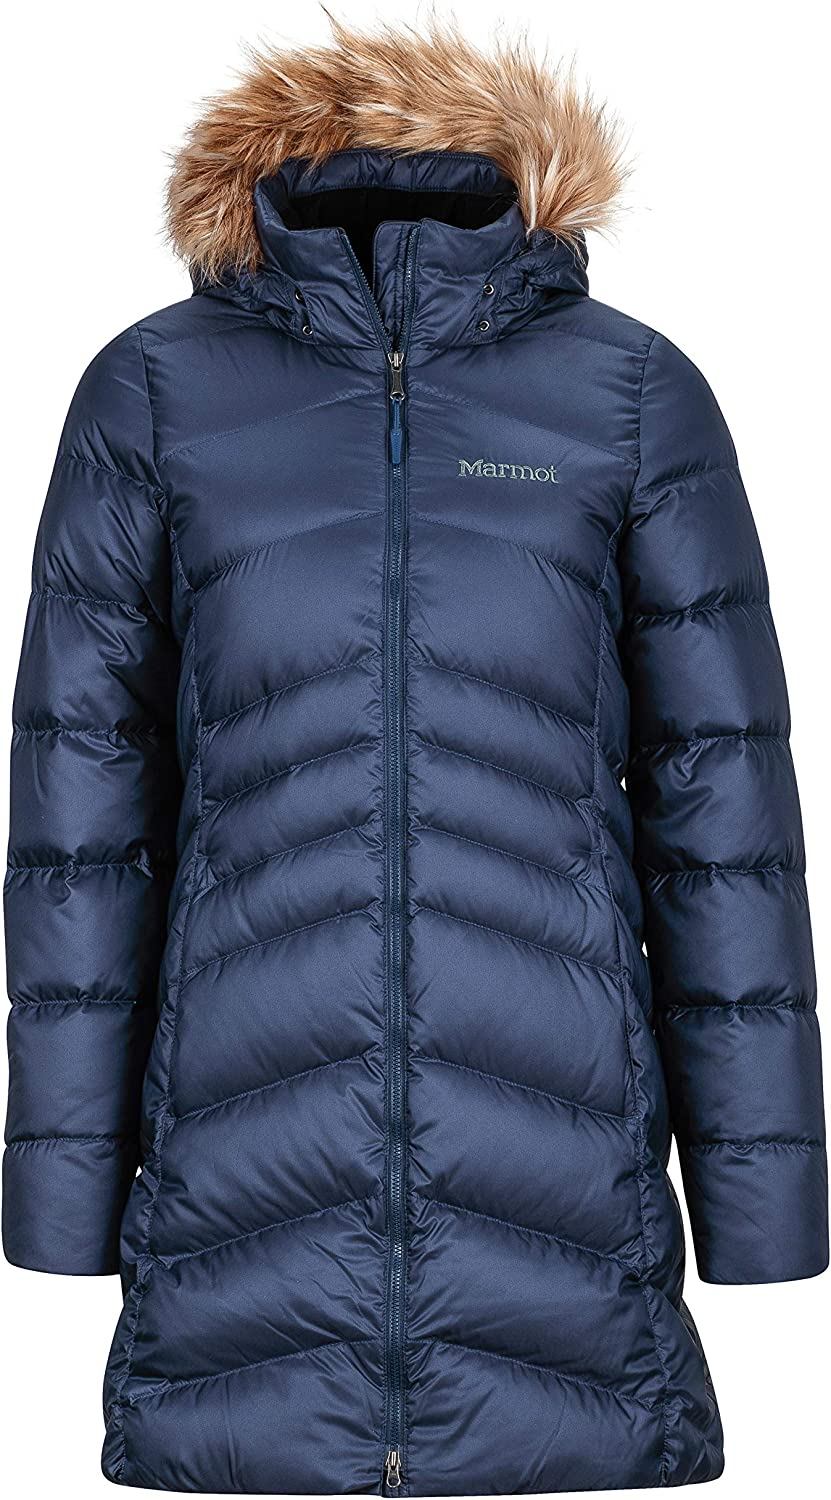 Marmot Women's Montreal Knee-length Down Puffer Coat: Clothing